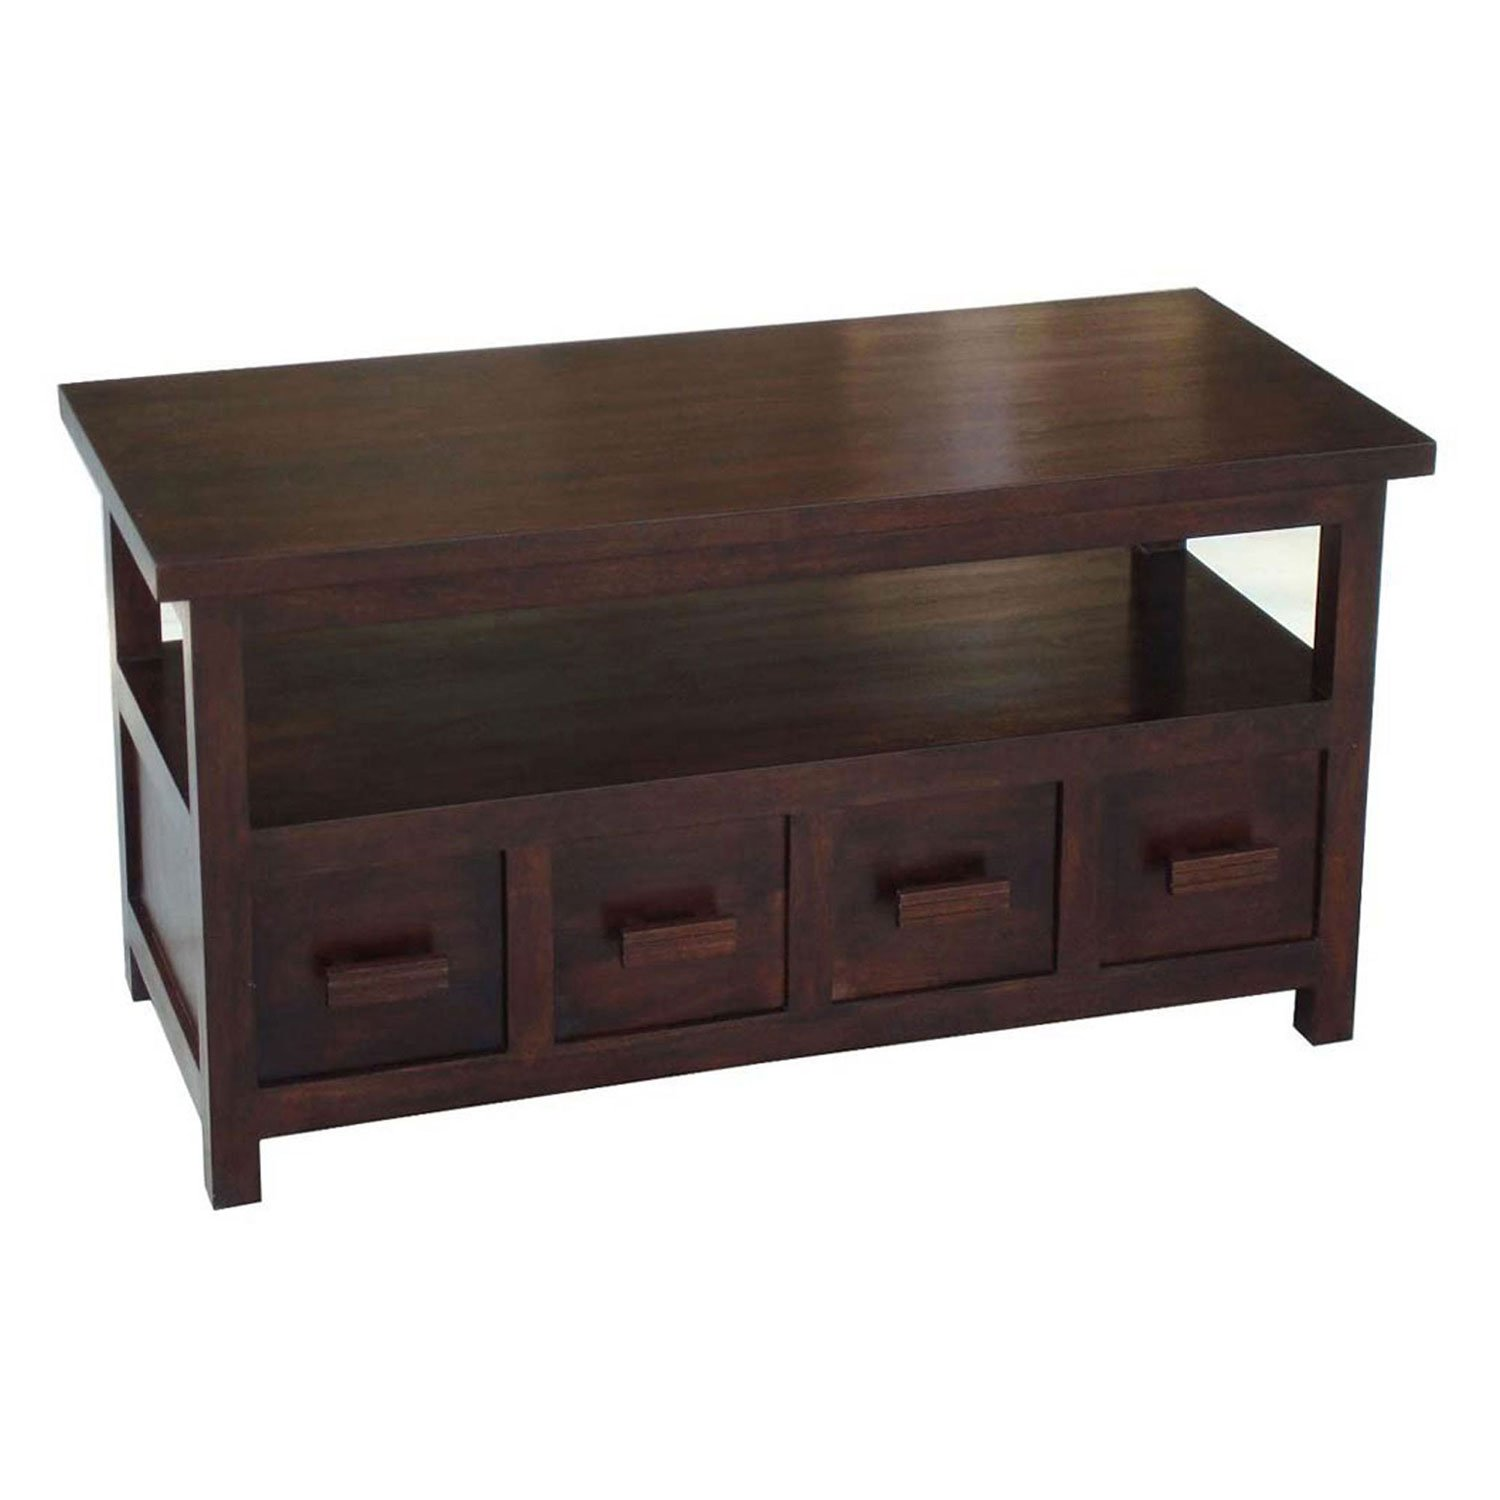 Homescapes Coffee Table cum TV Unit Walnut Shade 100% Solid Mango